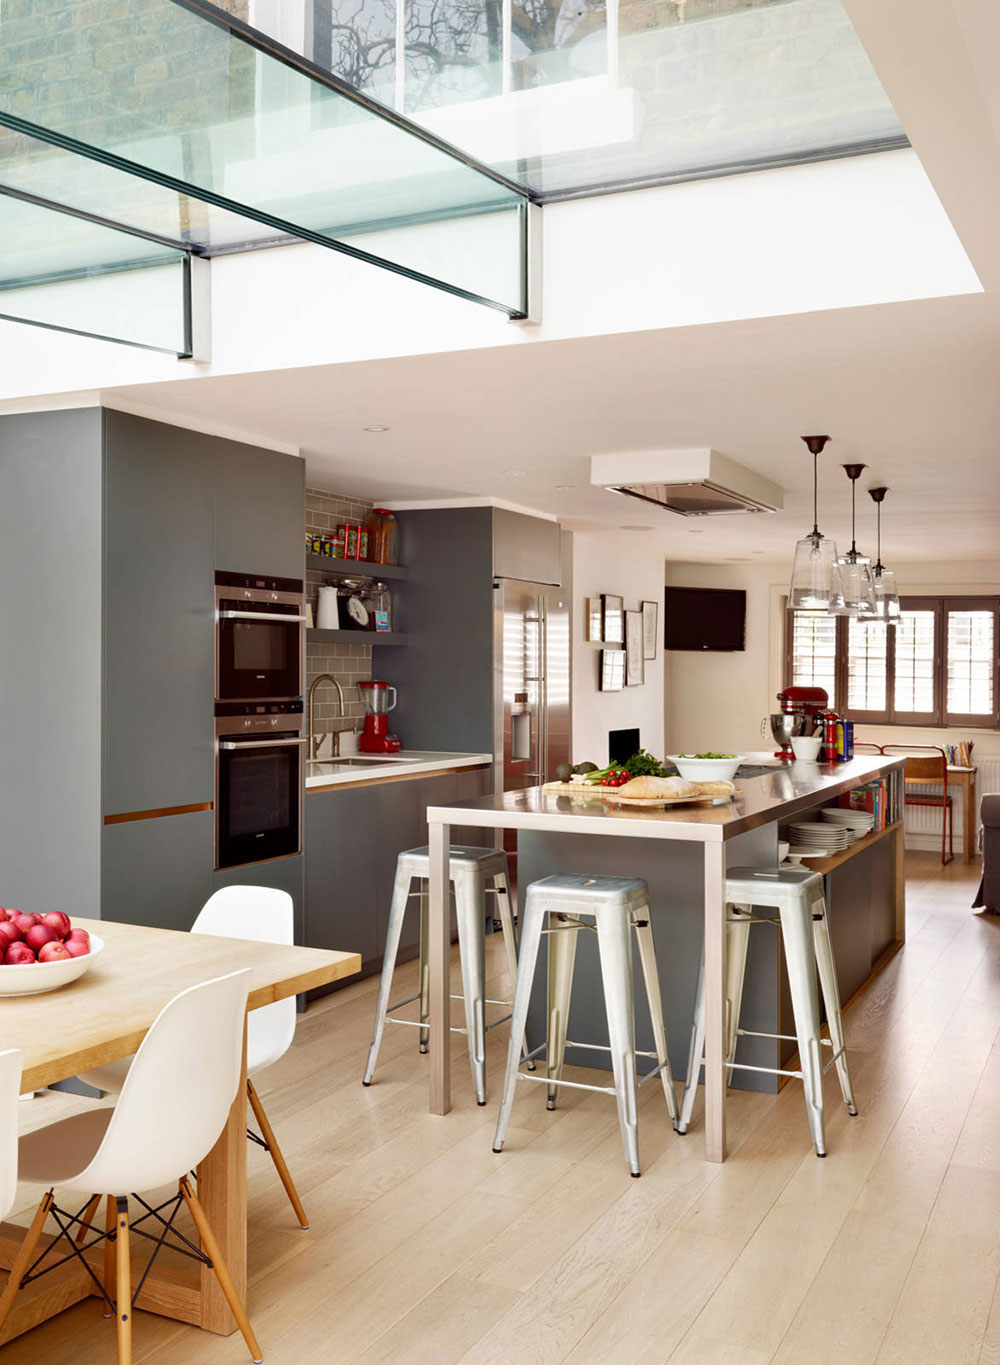 The advantages and disadvantages of open and closed kitchens2 The advantages and disadvantages of open and closed kitchens